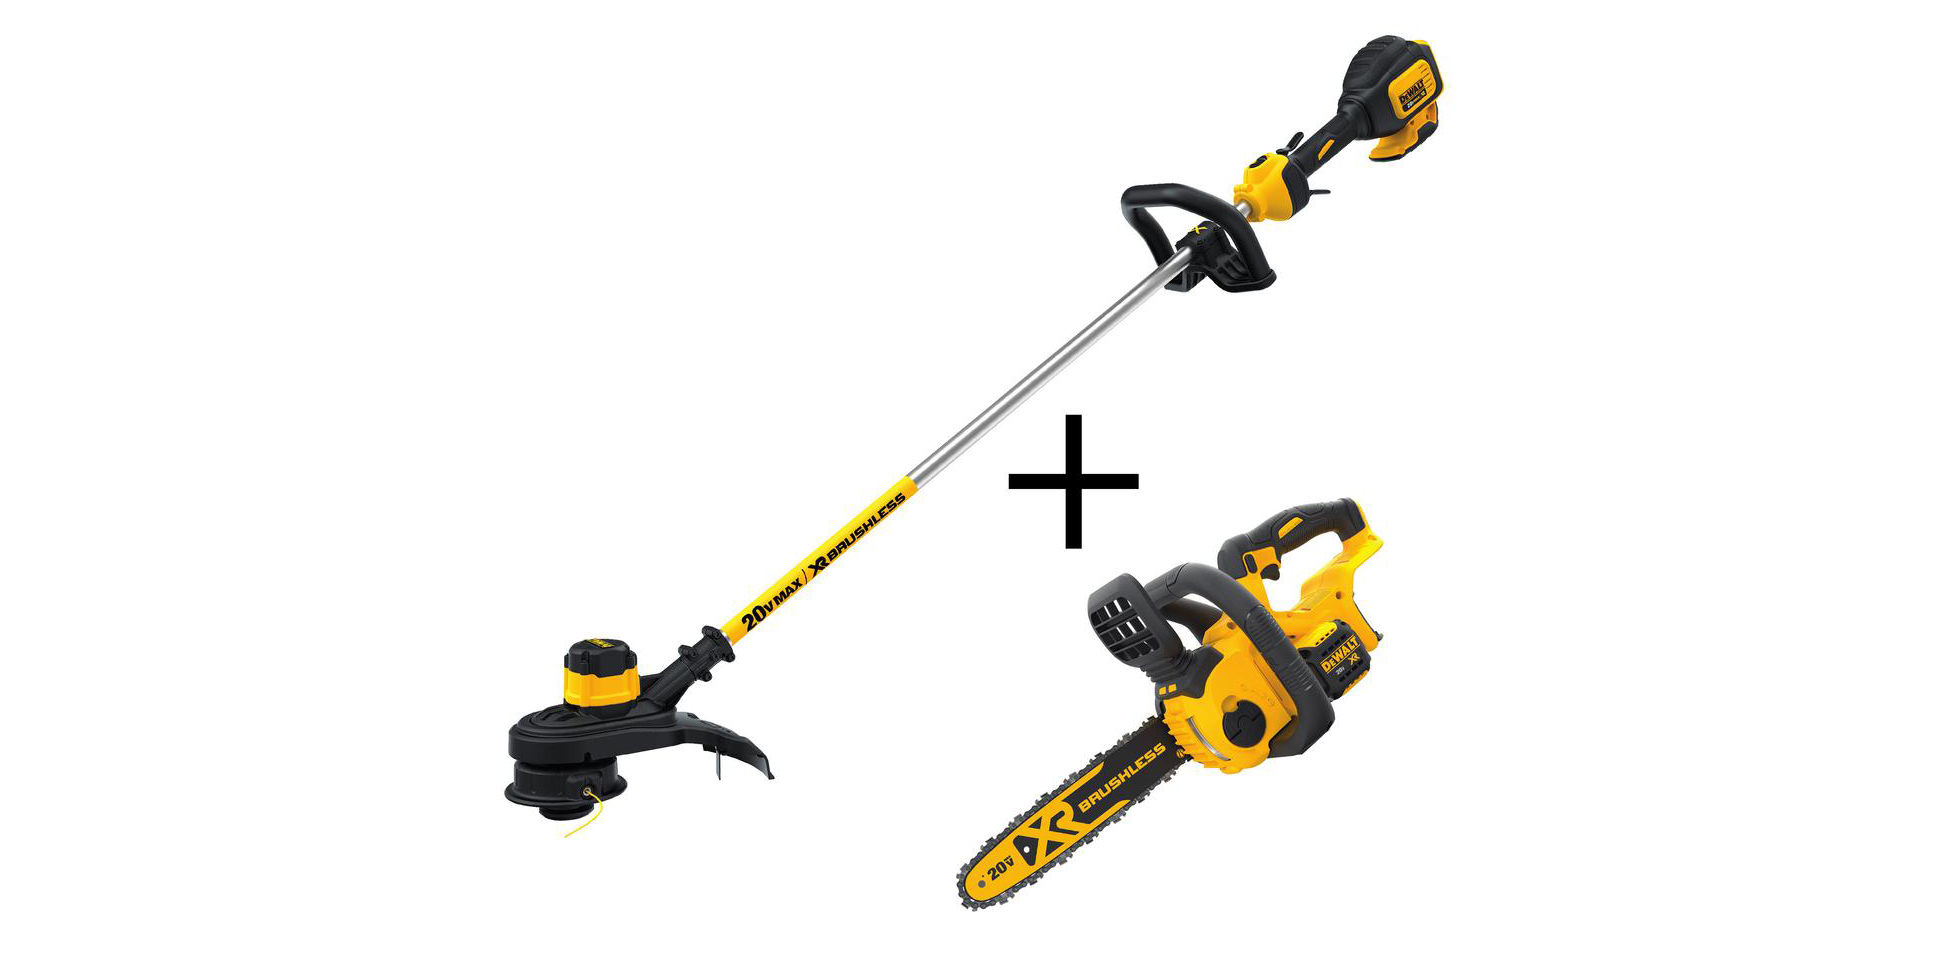 Get DEWALT's top-rated electric Chainsaw and String